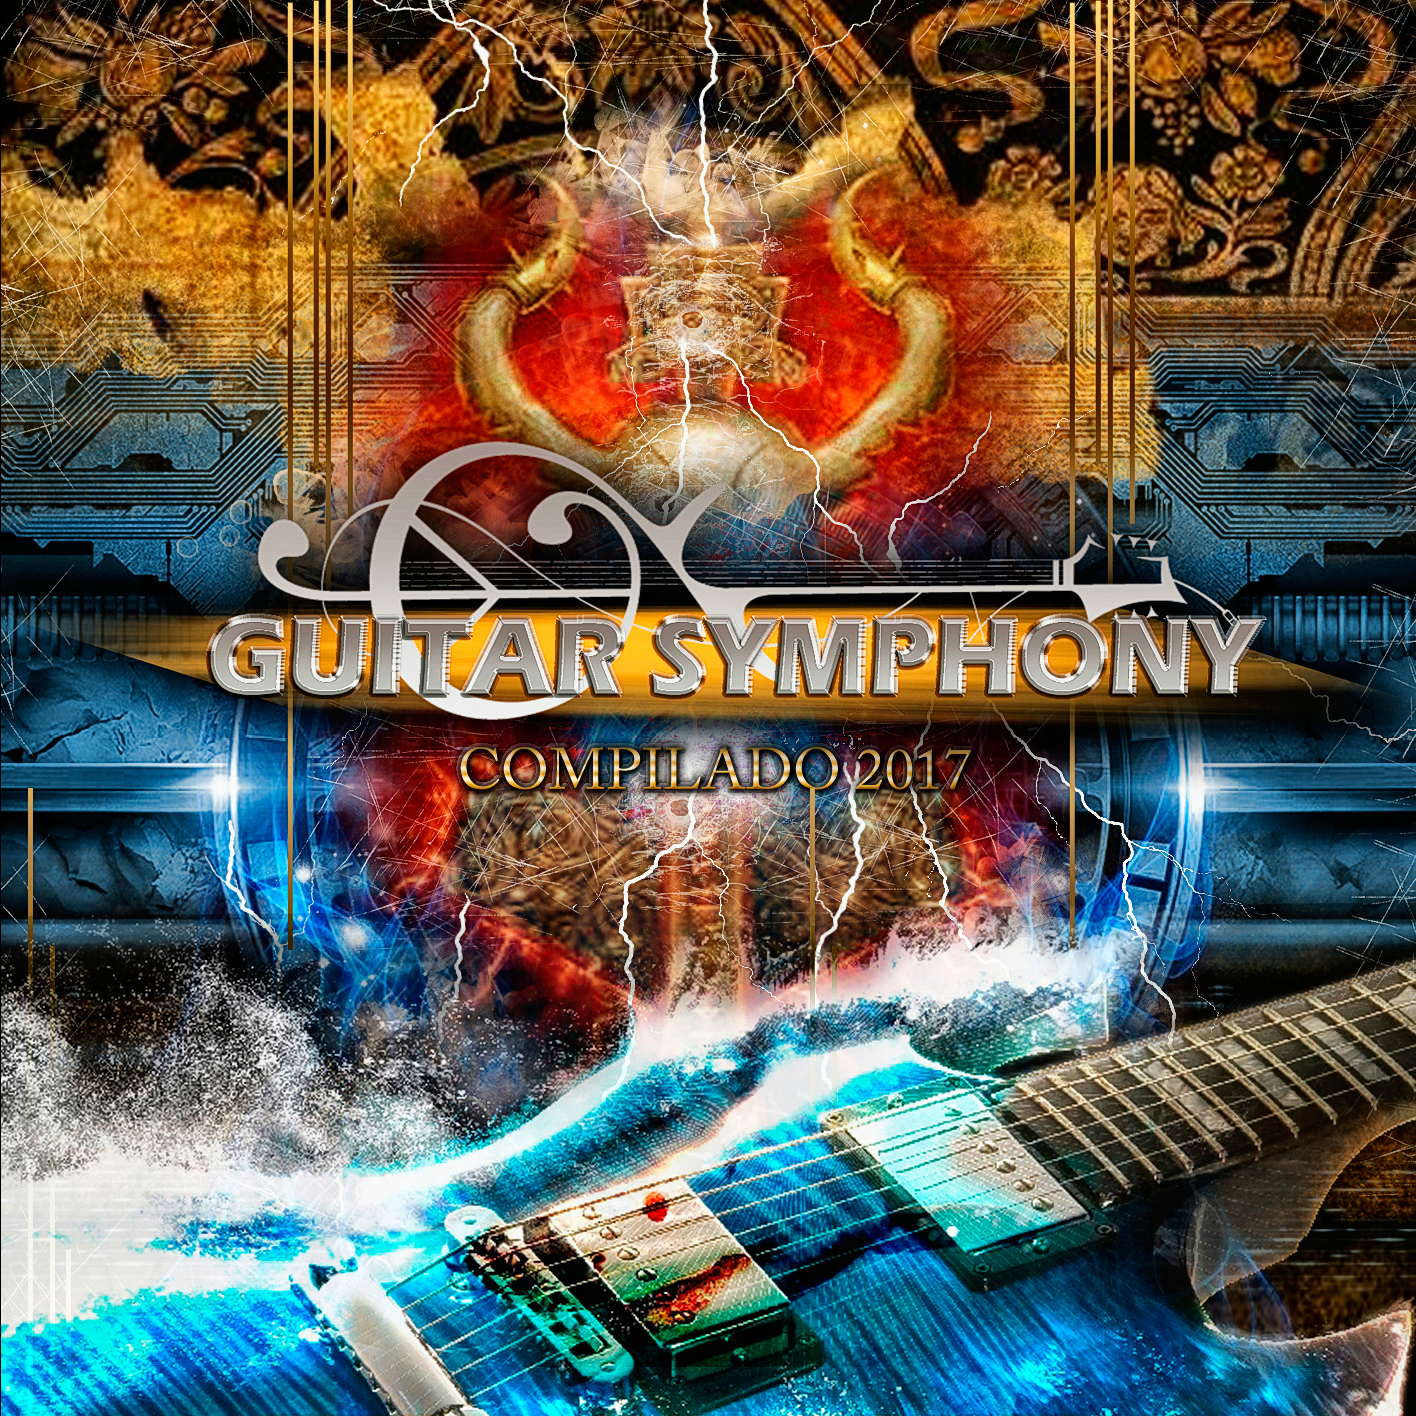 Release of Guitar Symphony 2017 Record!